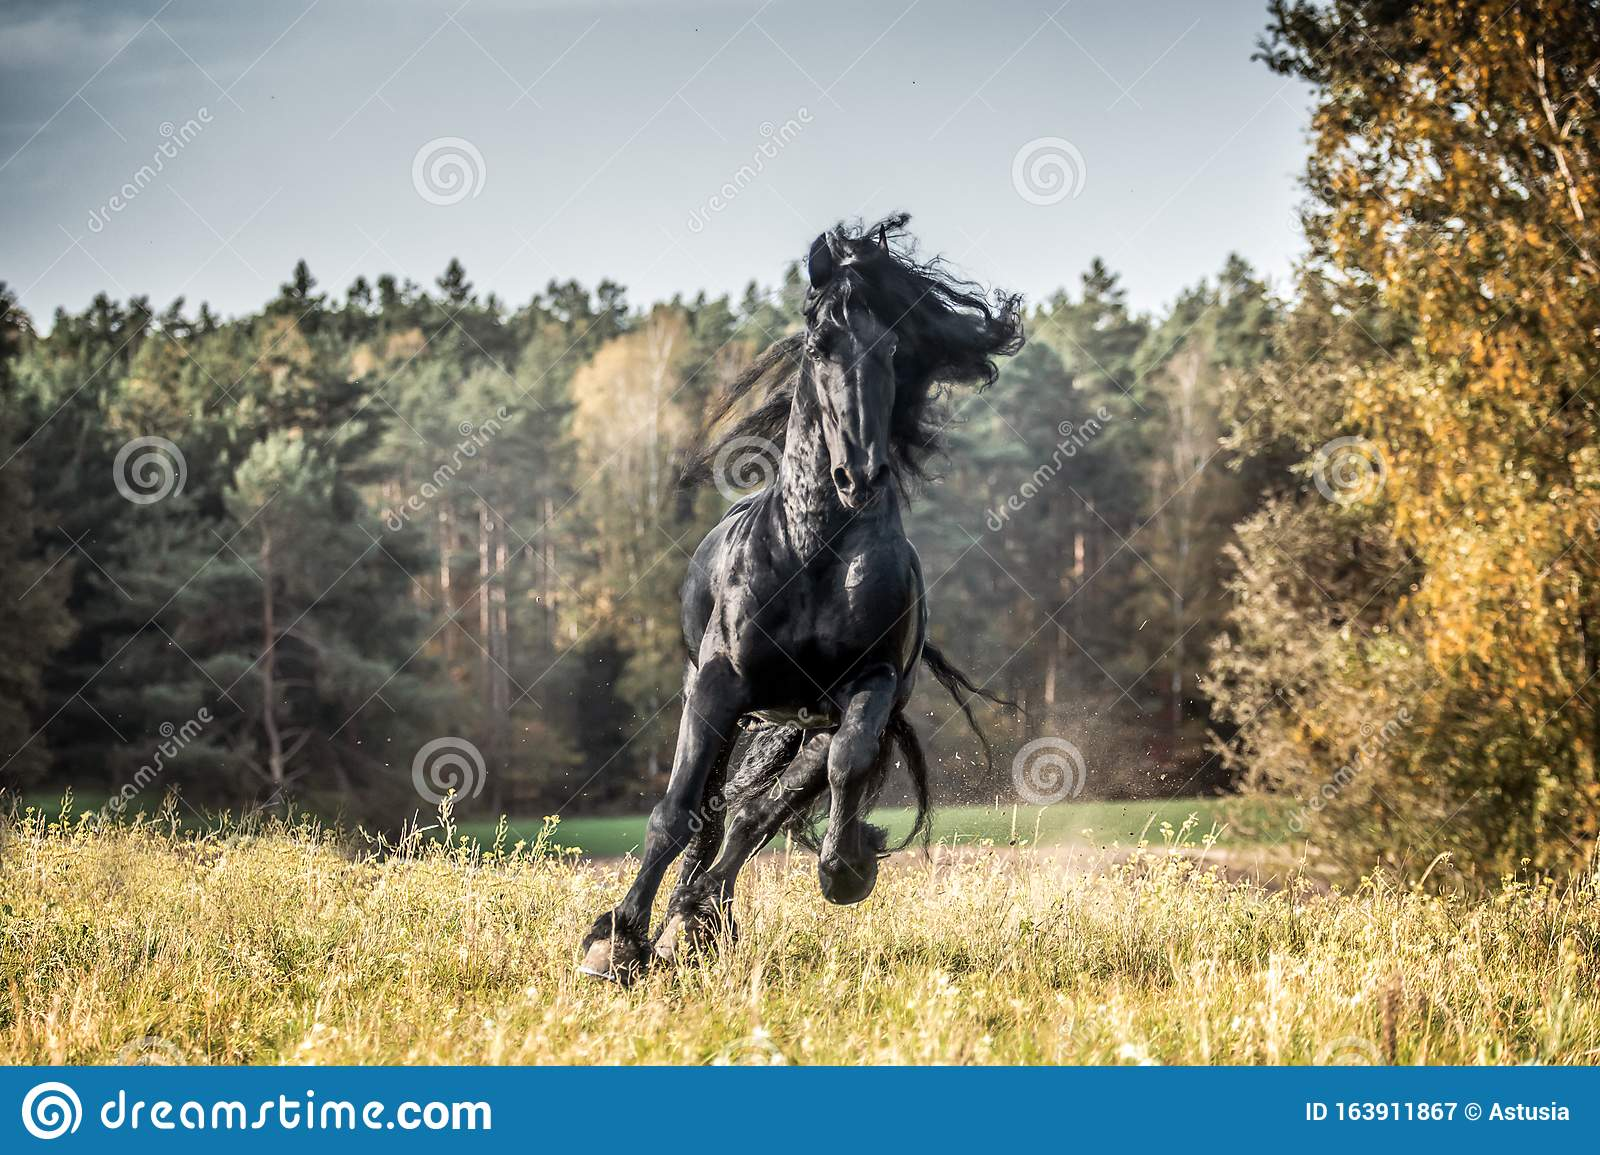 Beautiful Black Horse The Friesian Stallion Gallops On The Autumn Meadow Stock Image Image Of Equine Nature 163911867